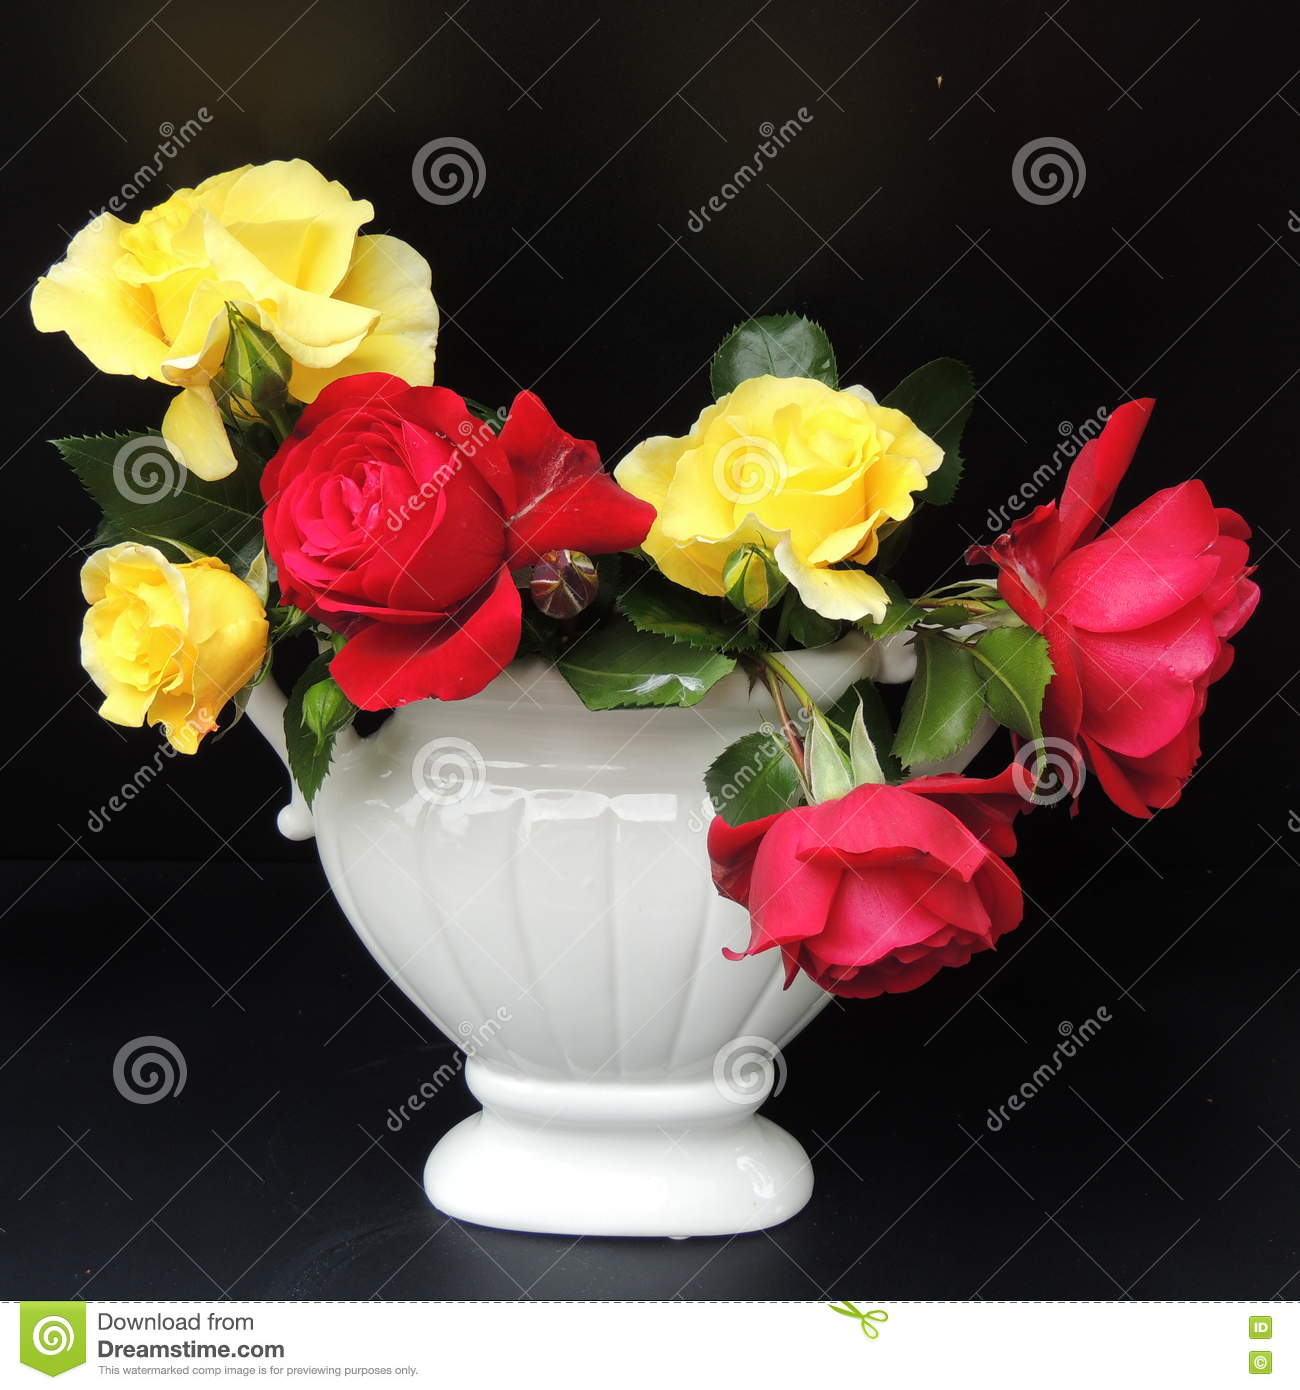 And a bouquet of red roses in a white vase on a black background and a bouquet of red roses in a white vase on a black background reviewsmspy